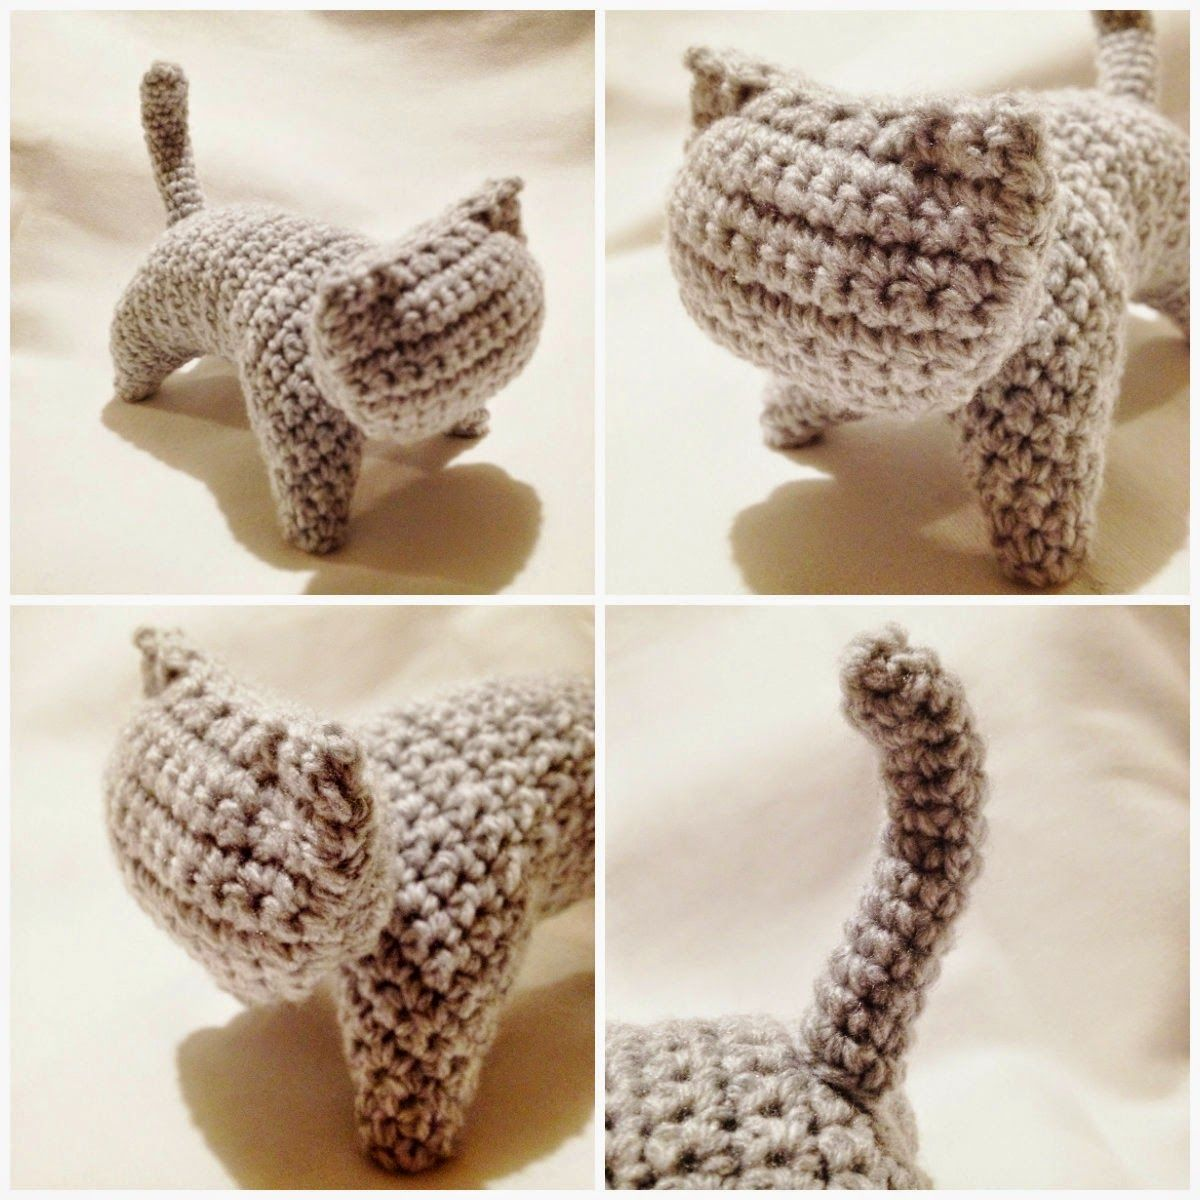 Pin by Cécilia Nguyen Khac Minh on bebe | Pinterest | Amigurumi and ...